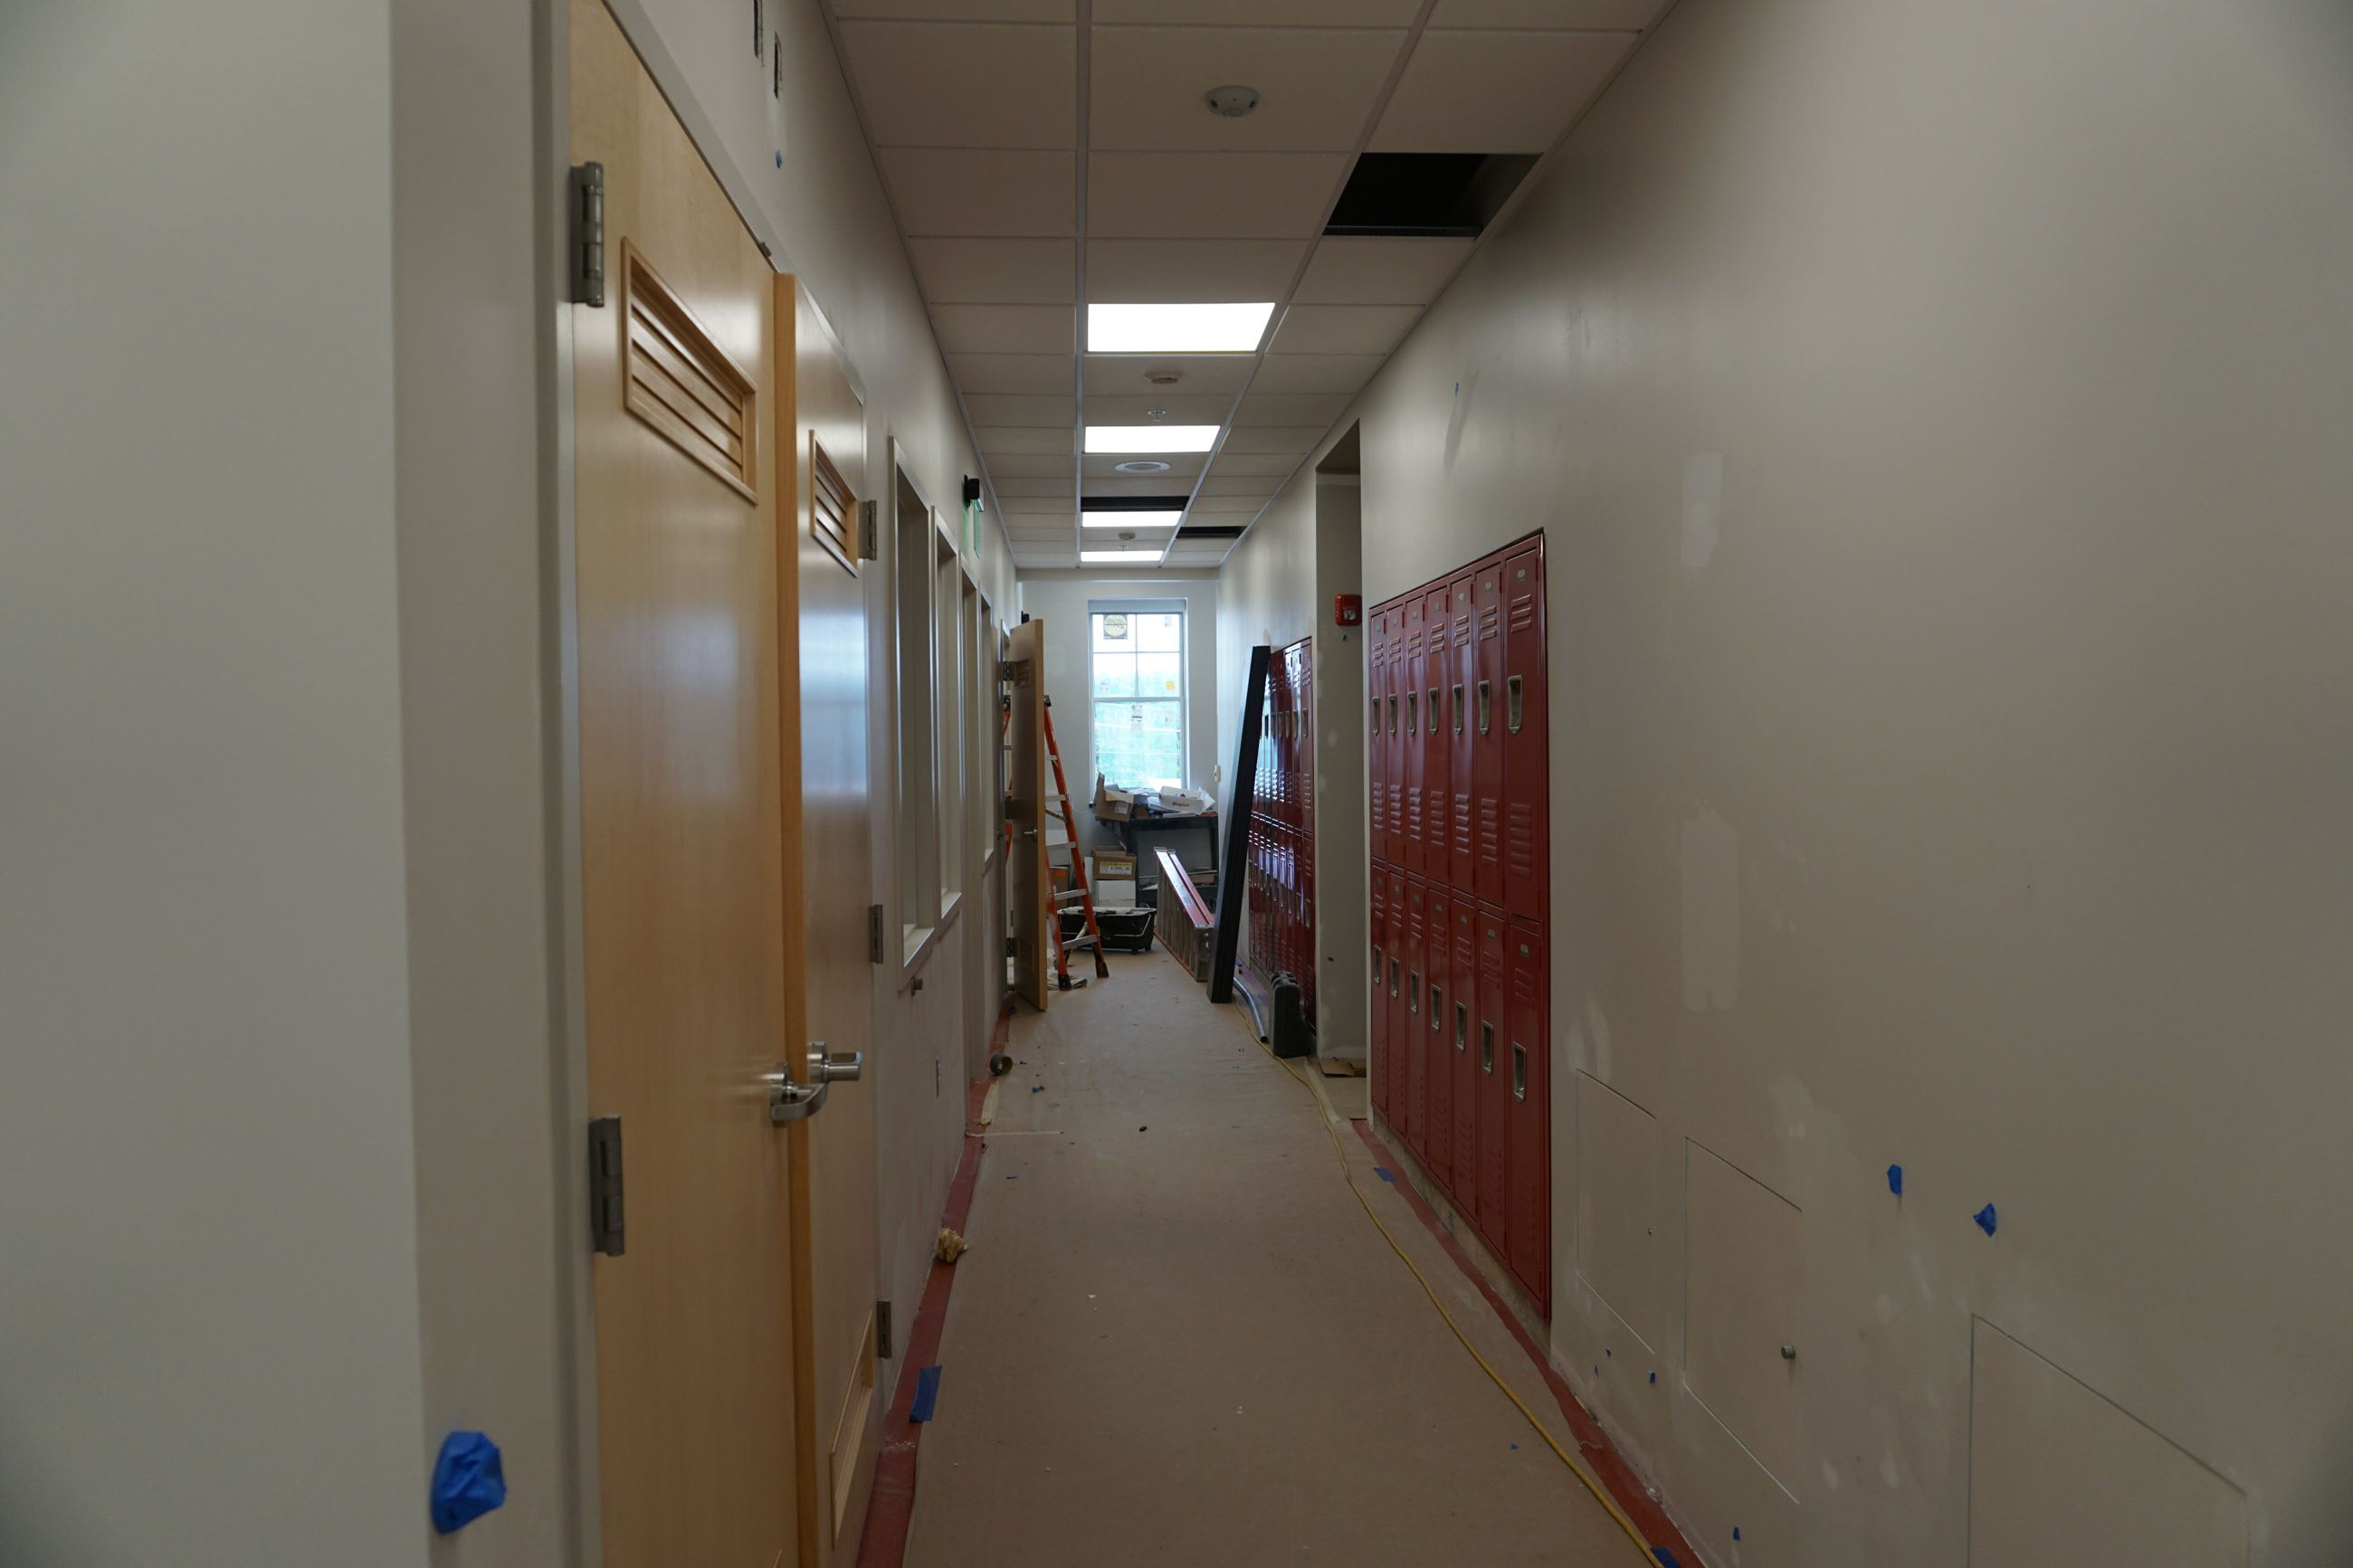 9-14-18 Second Floor Lockers